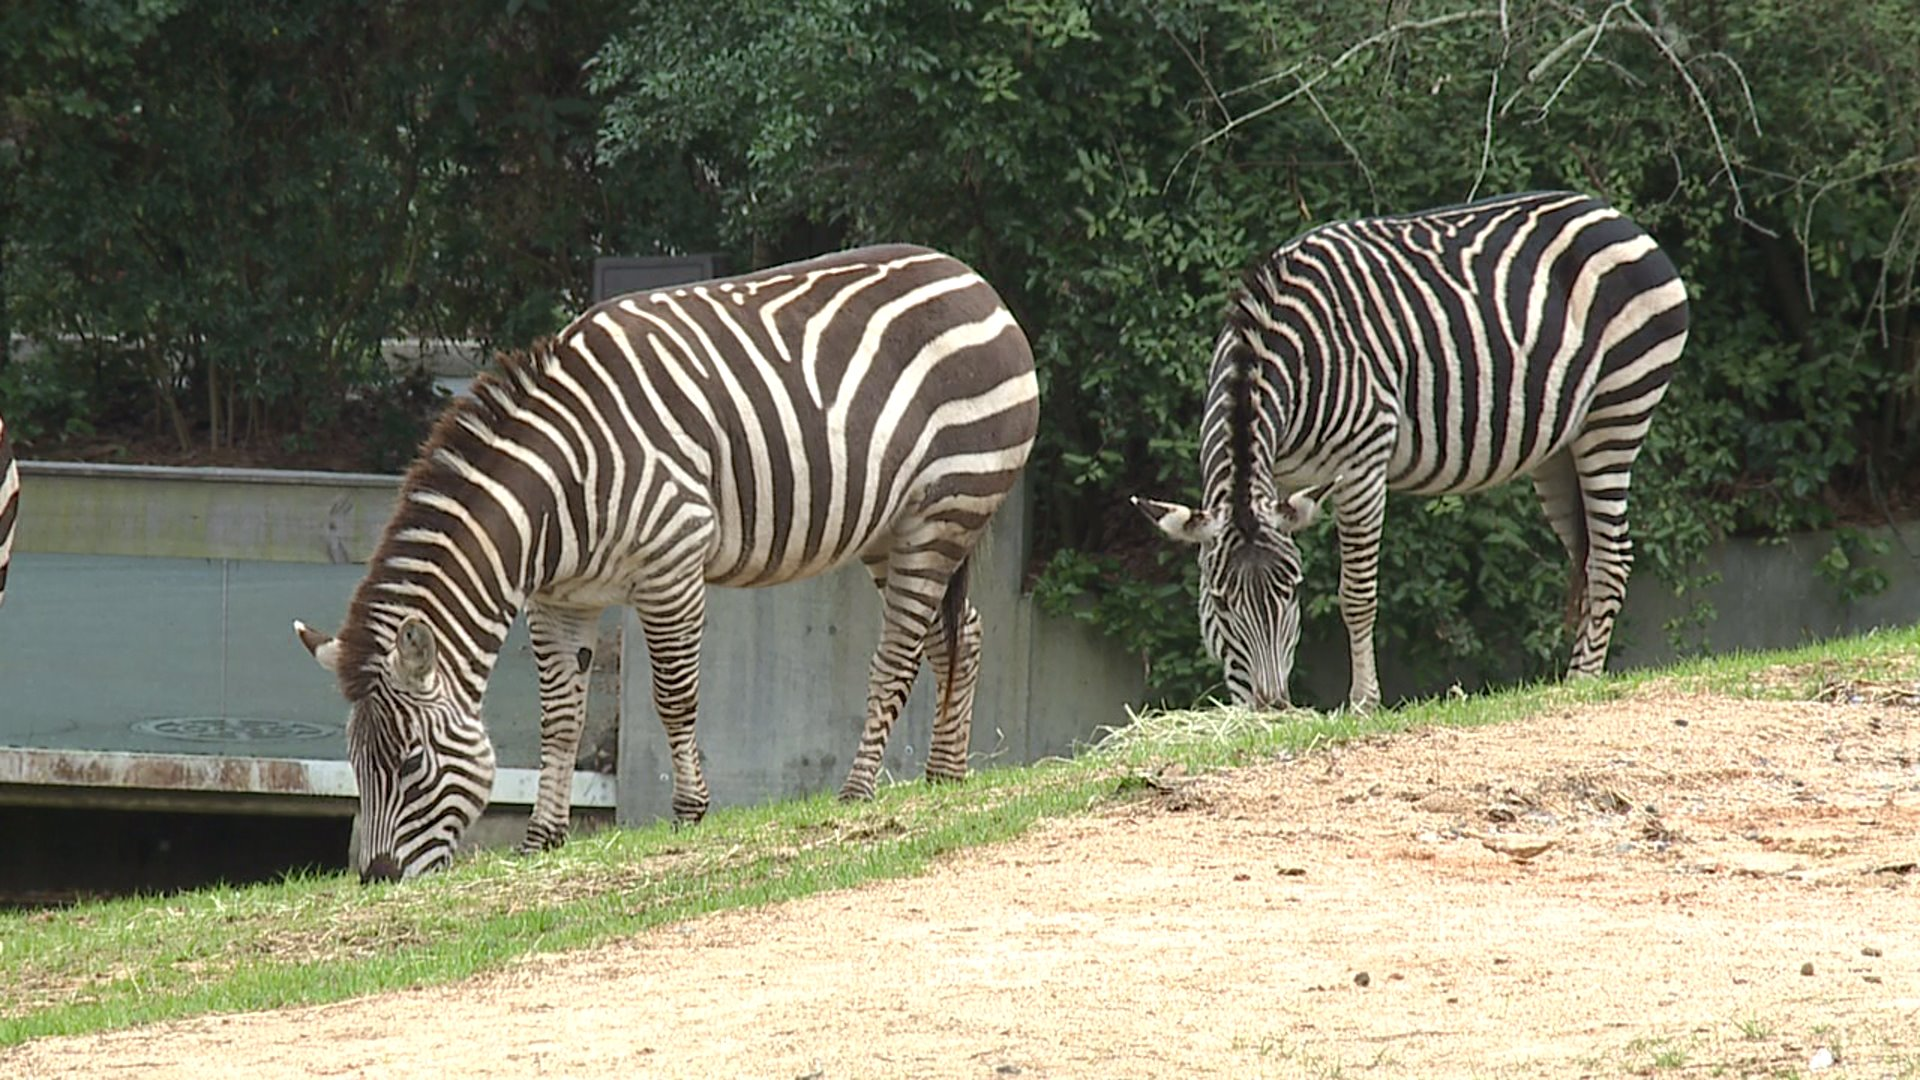 Zebras find home at North Carolina Zoo